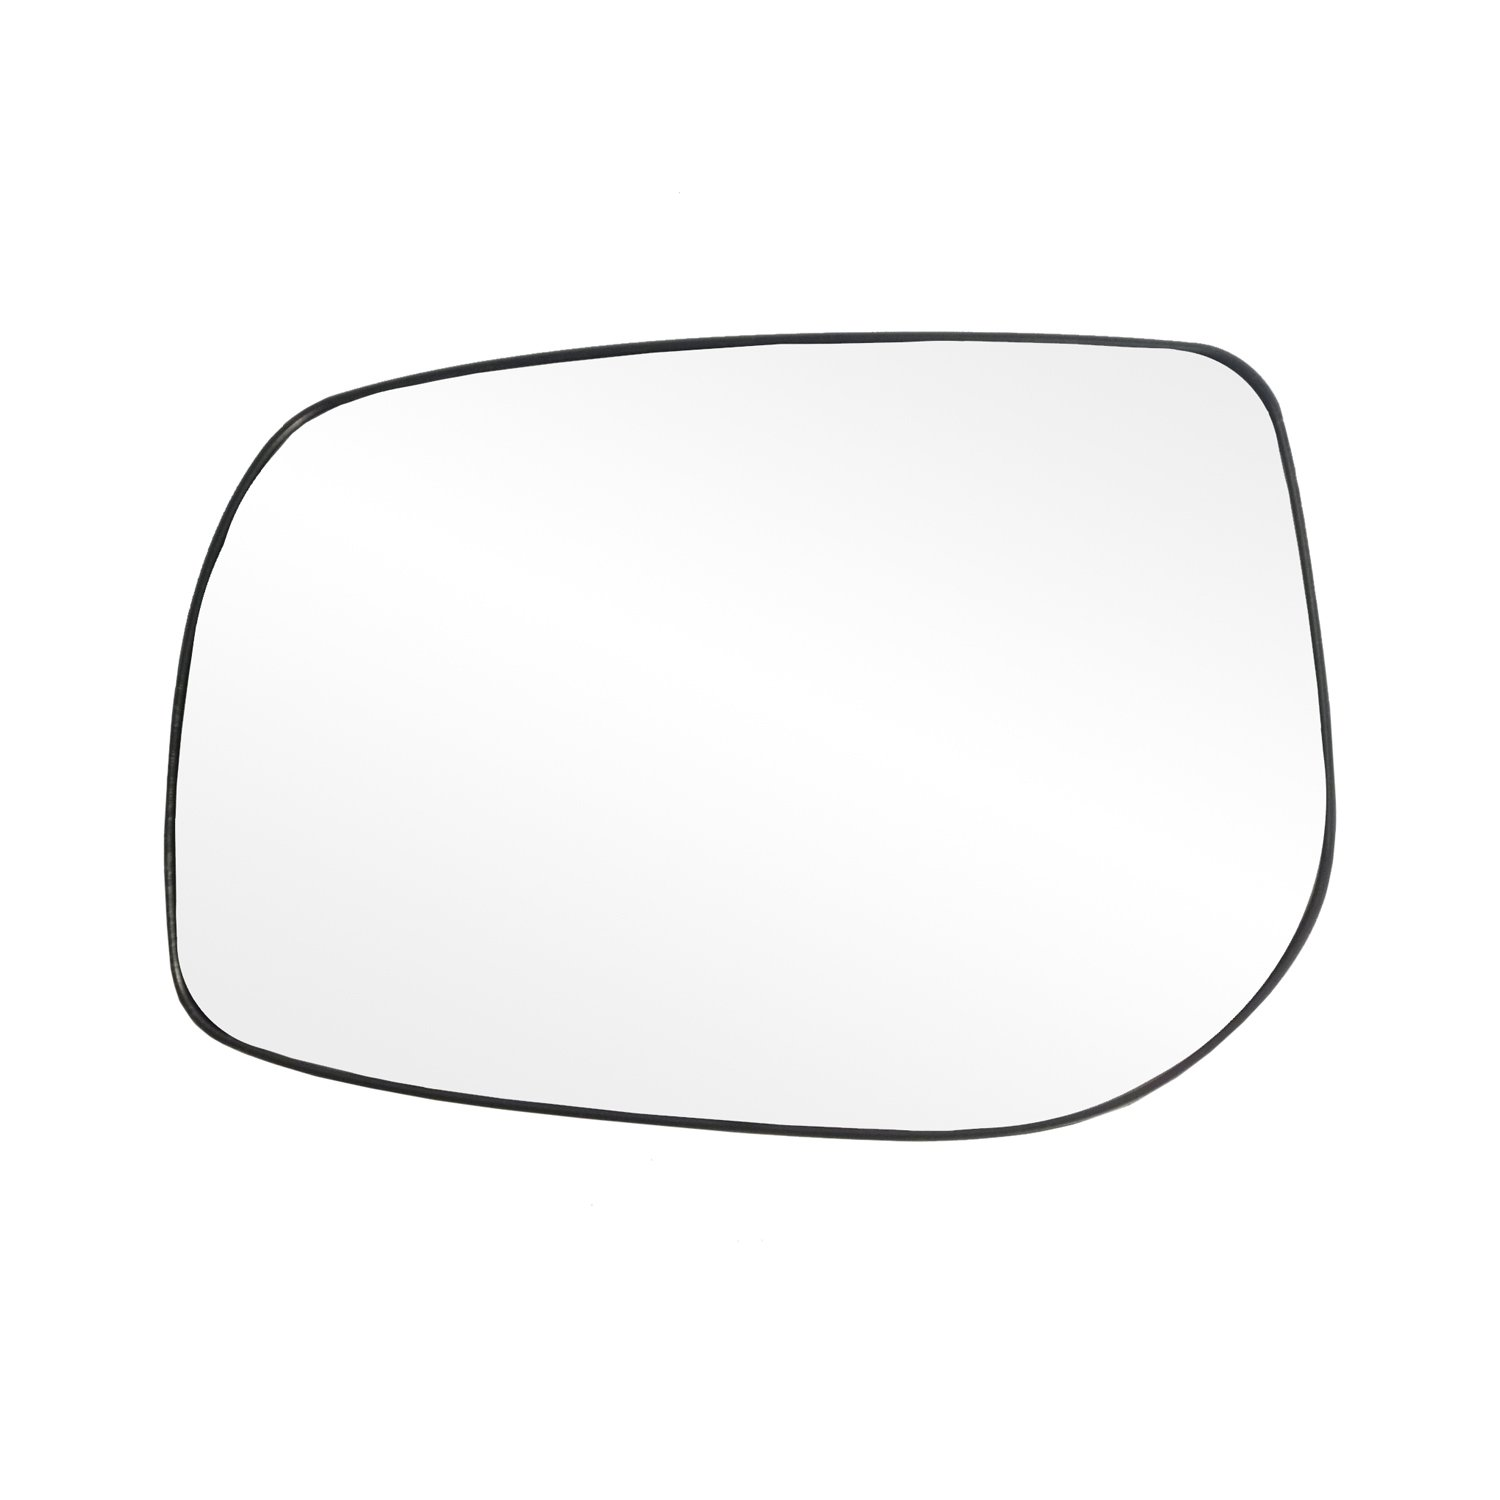 Fit System 88226 Toyota Corolla/Matrix Left Side Power Replacement Mirror Glass with Backing Plate